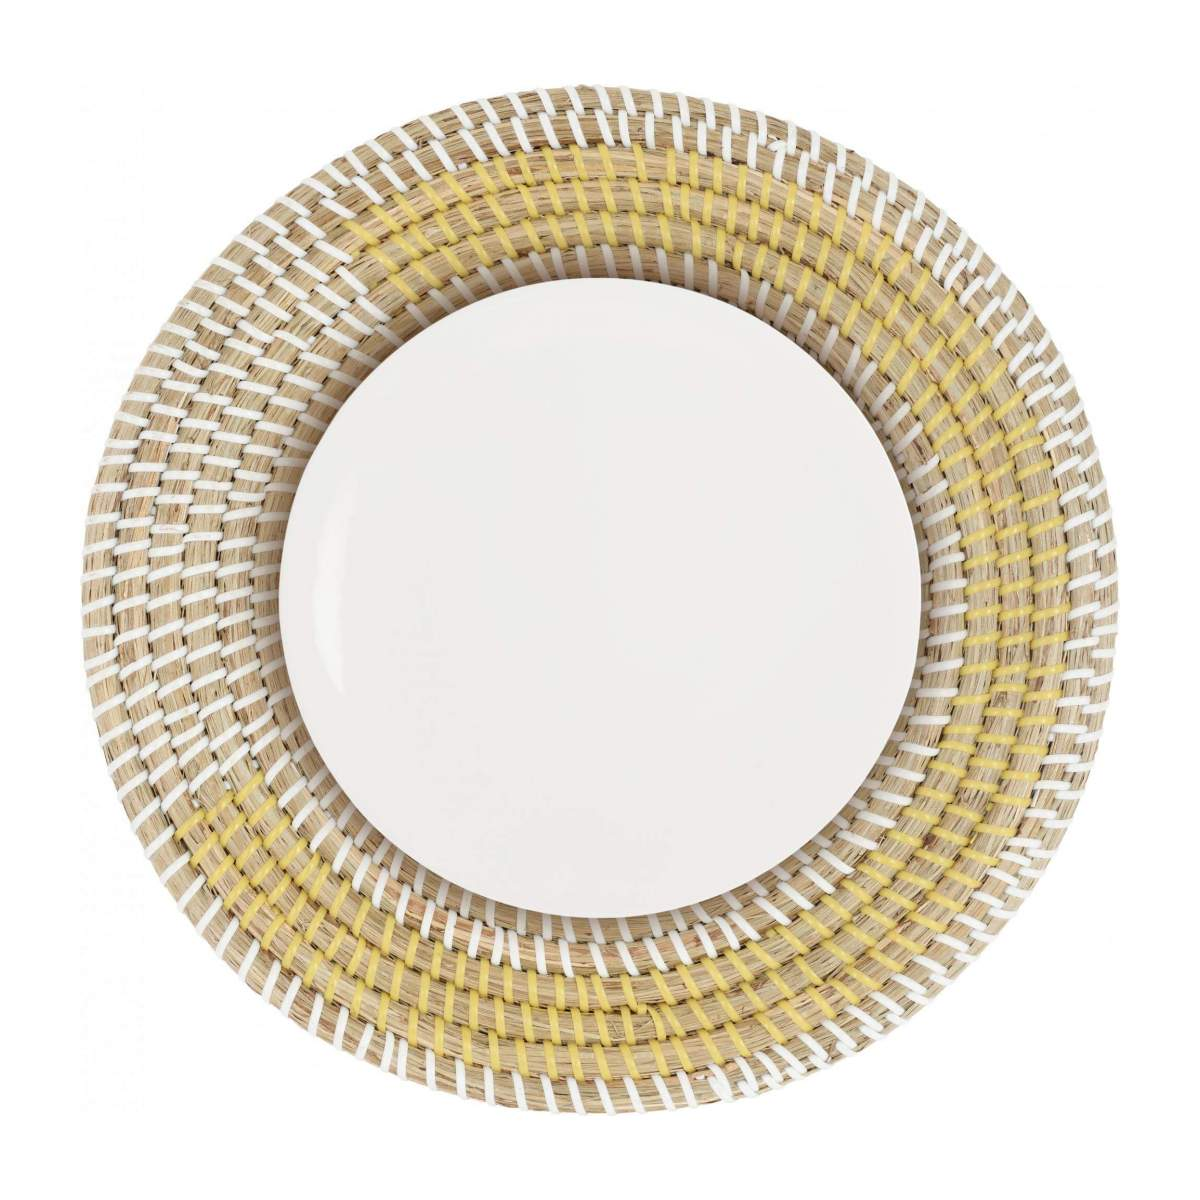 Set de table rond en jonc de mer - 35 cm n°3